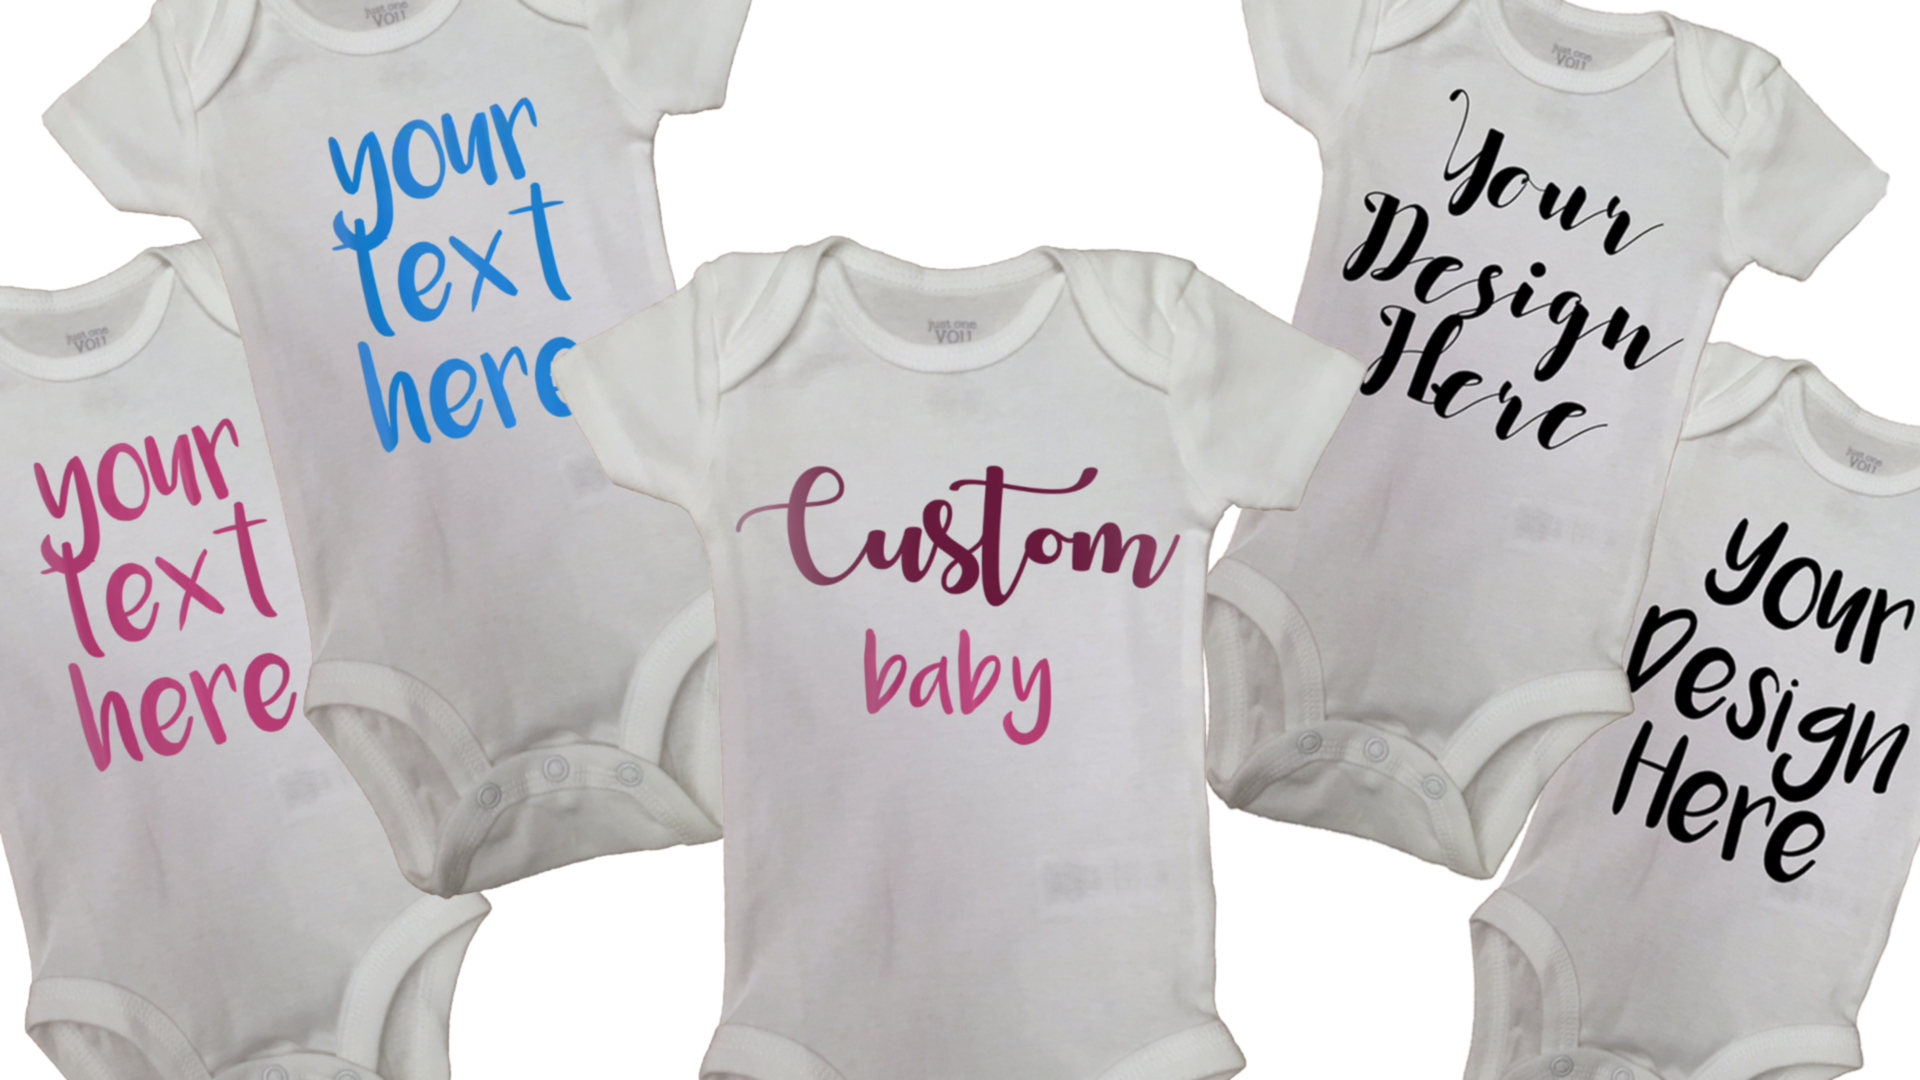 Custom Baby Onesies®, Your Design Here, Personalized Baby Outfit